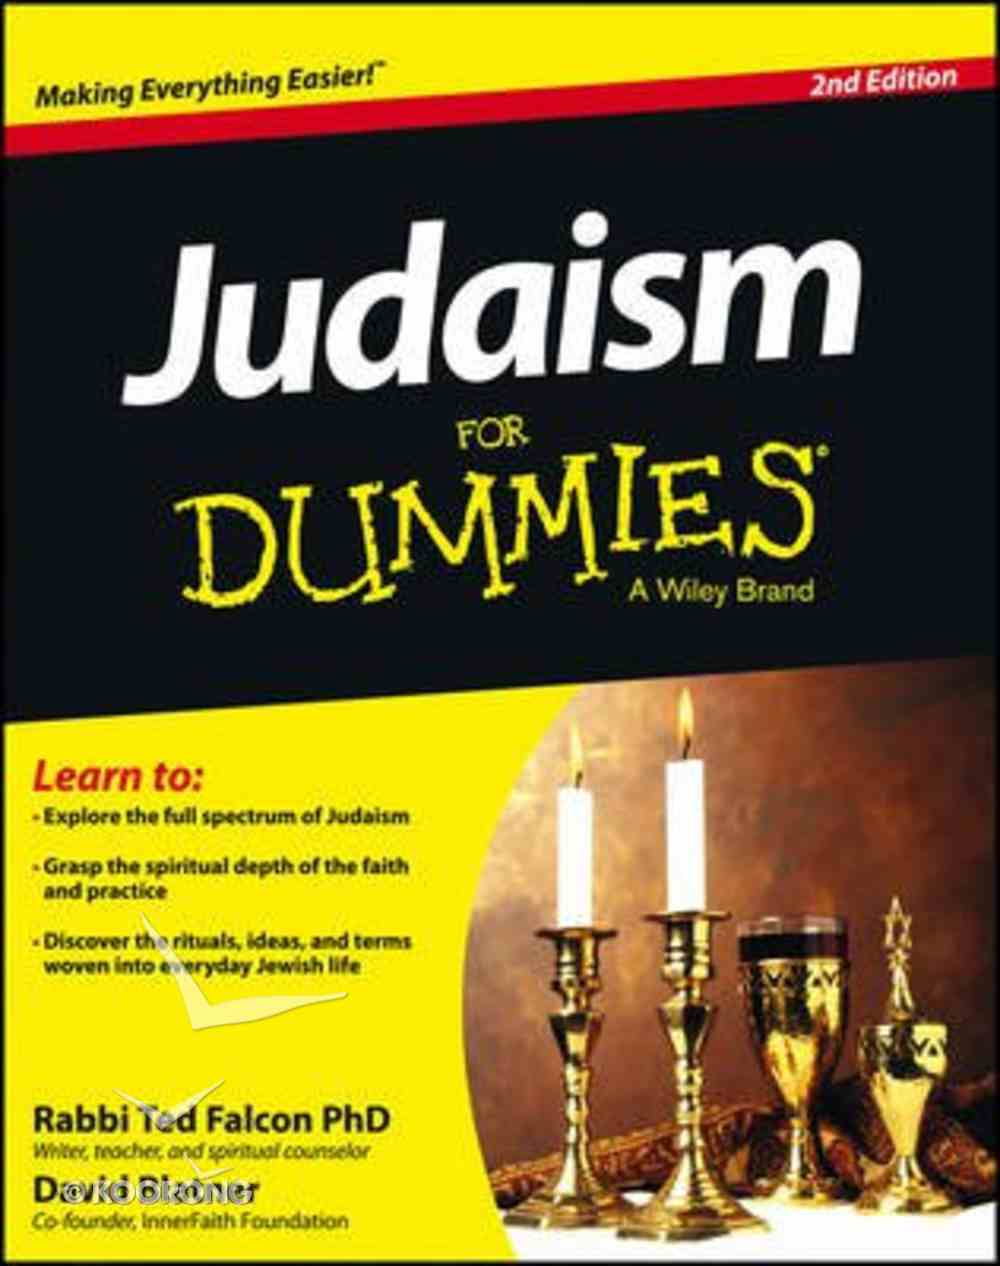 Judaism For Dummies (Second Edition) Paperback